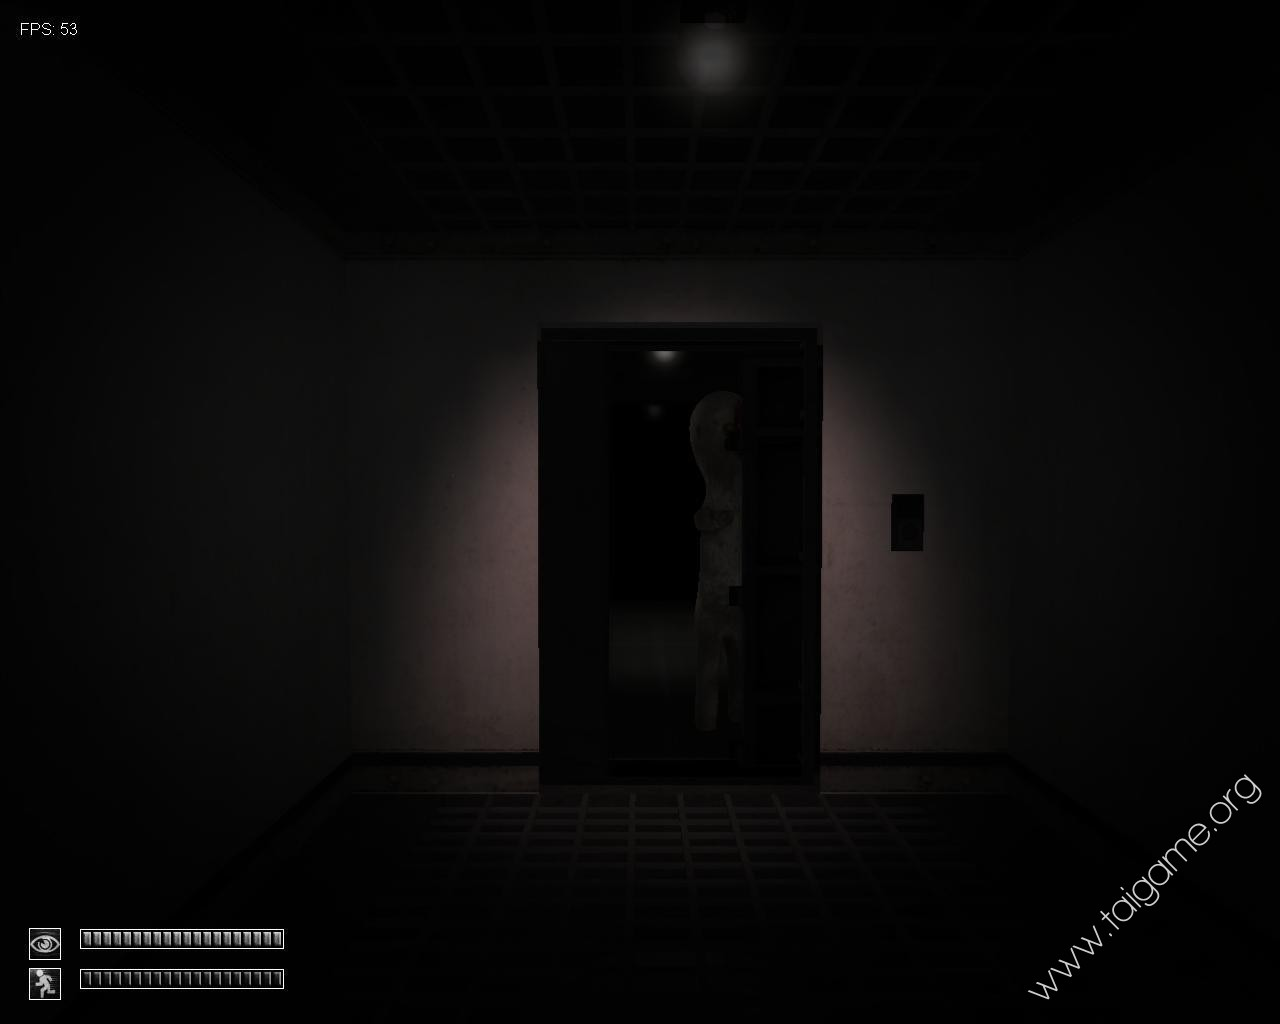 télécharger scp - containment breach gratuit (windows)